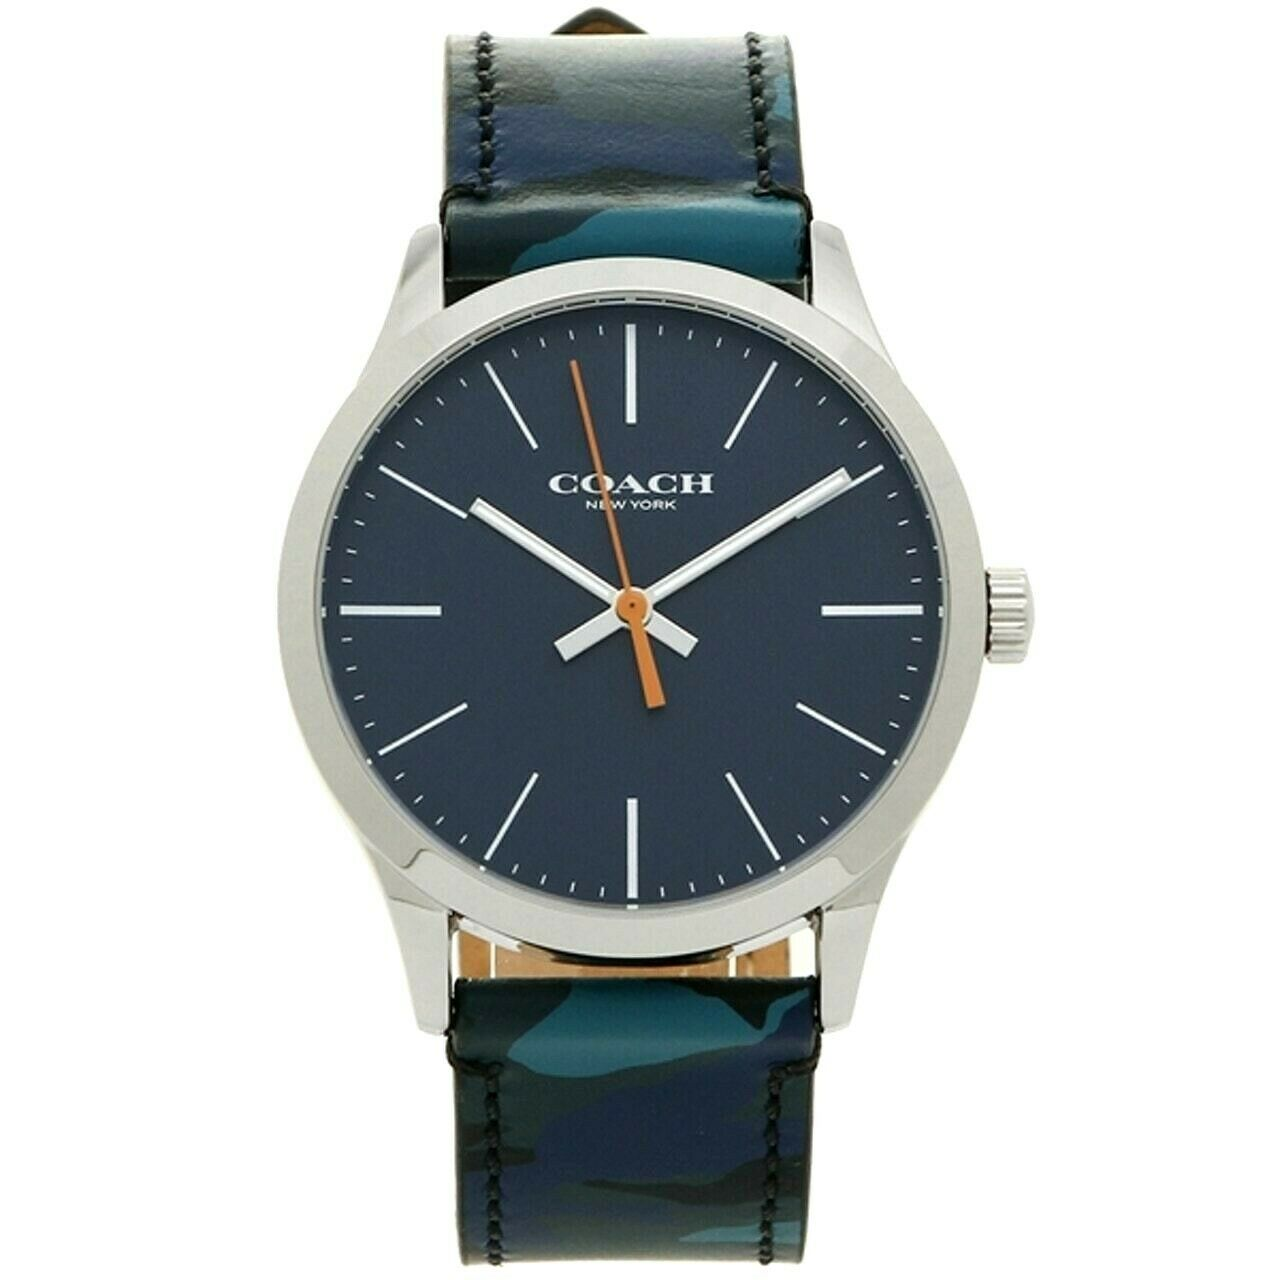 Coach Men's Watch 14602370 Blue Black Grey Camouflage Leather Strap Black $175